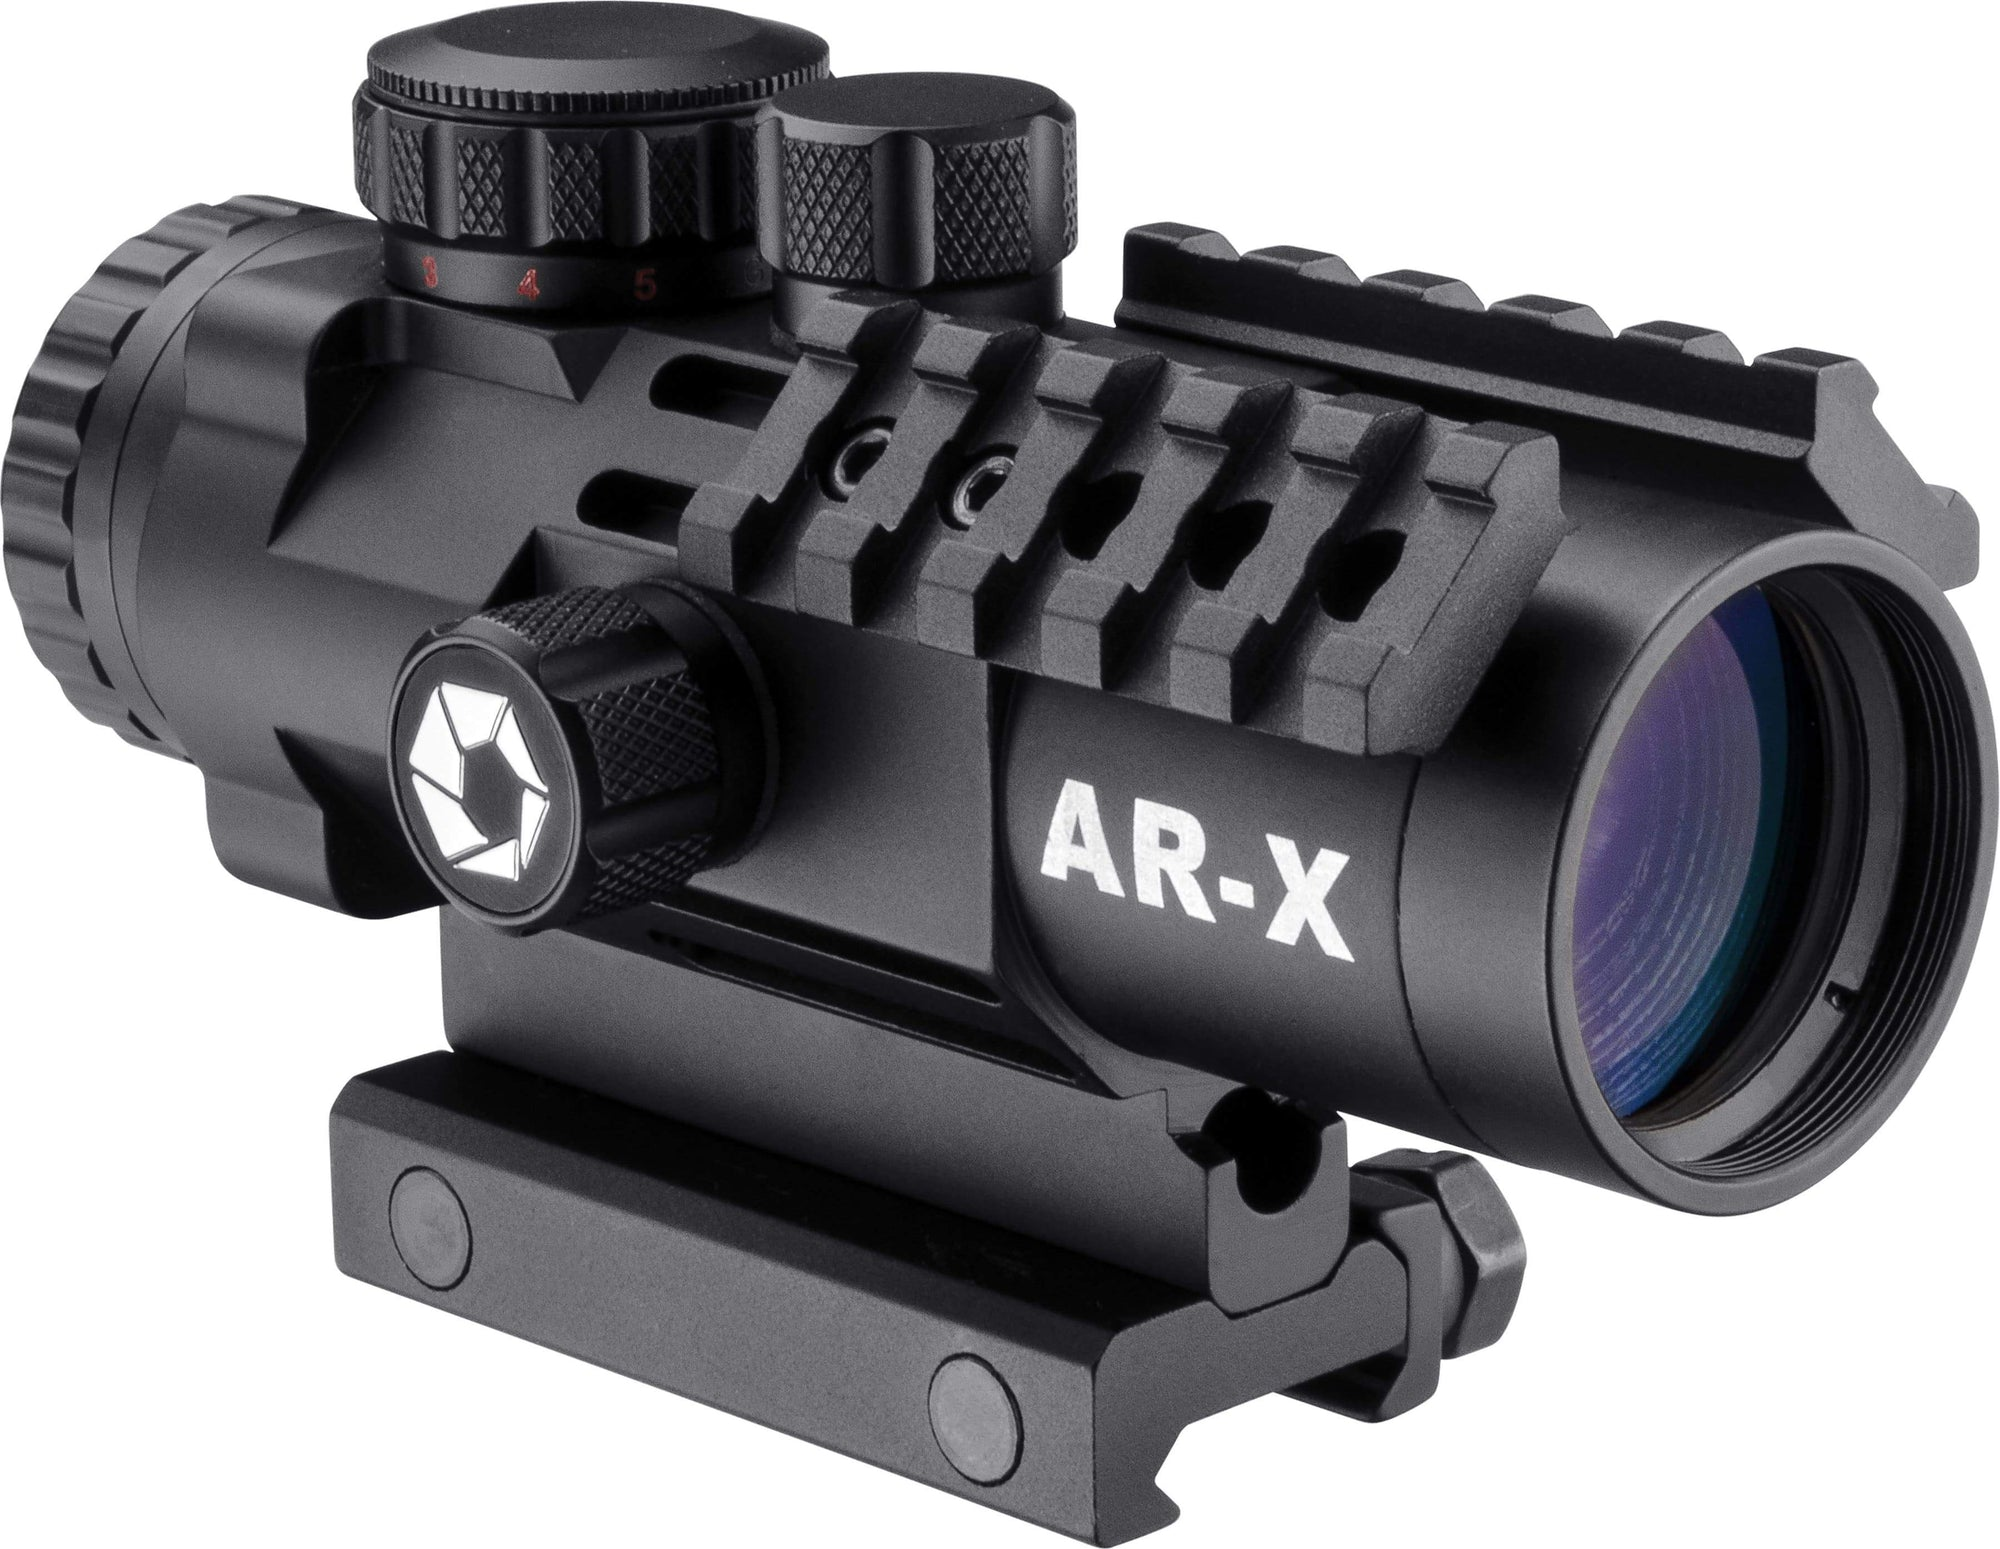 Barska 3 x 32mm IR AR-X Prism Rifle Scope w/ Mounting Rails Armadillo Safe and Vault